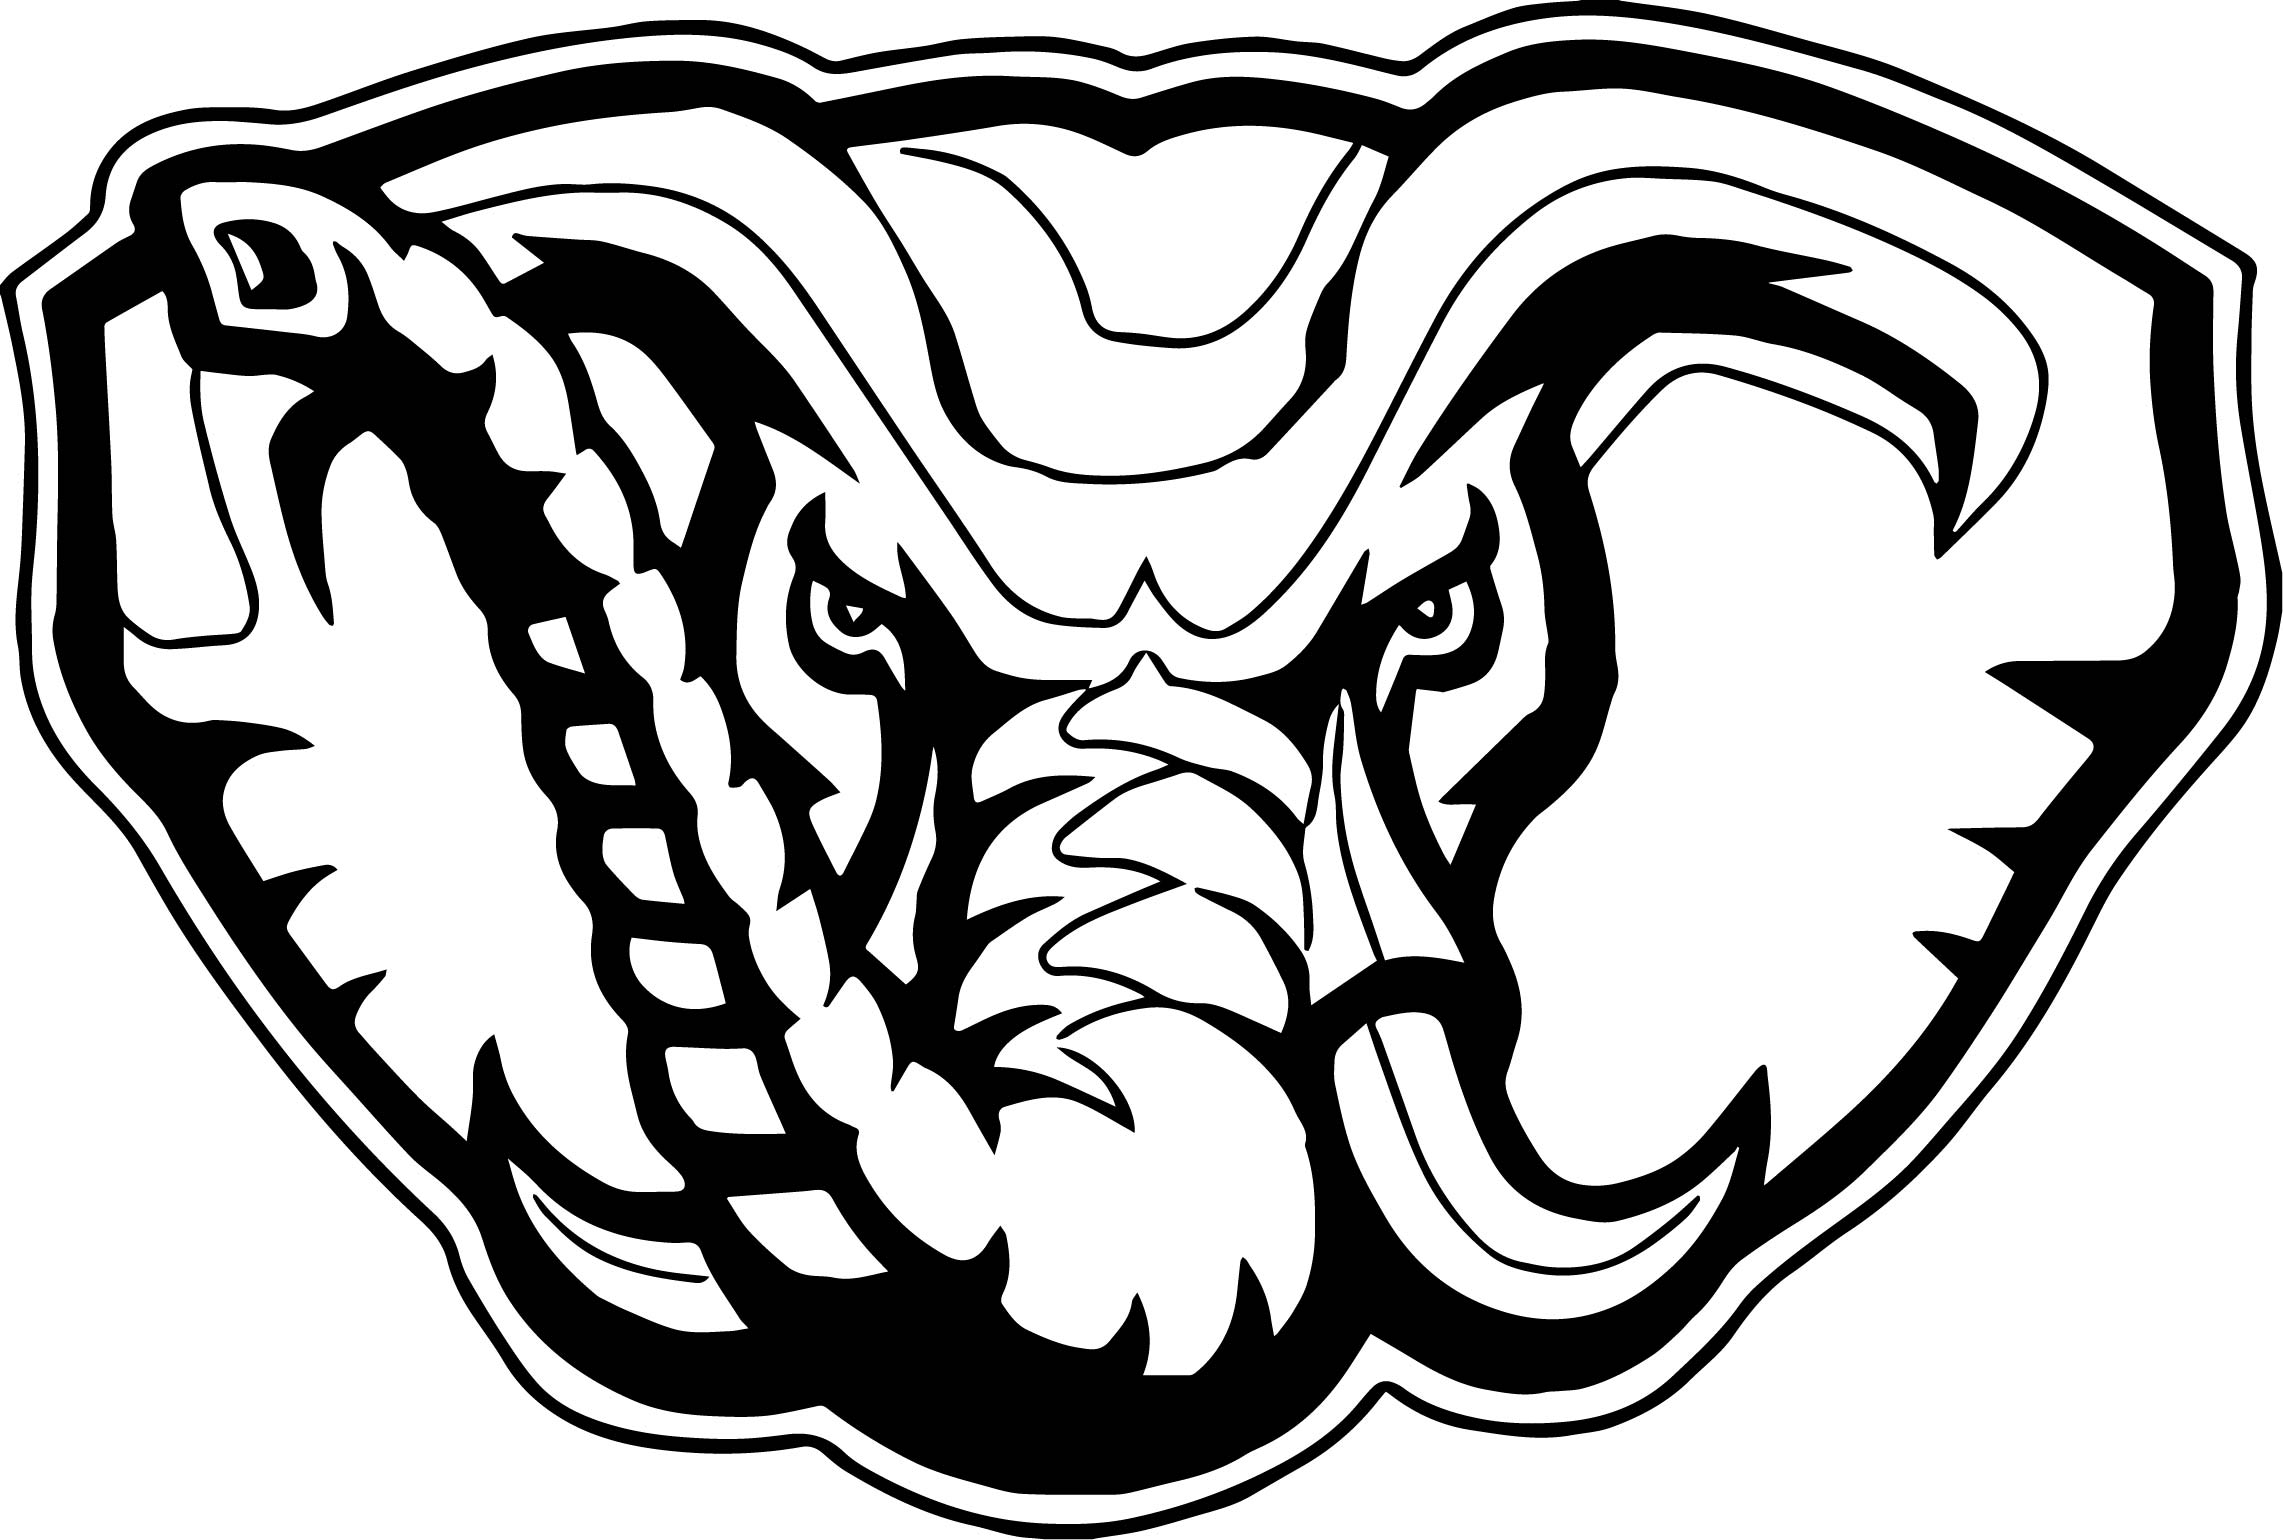 elephant football logo alabama crimson tide coloring page